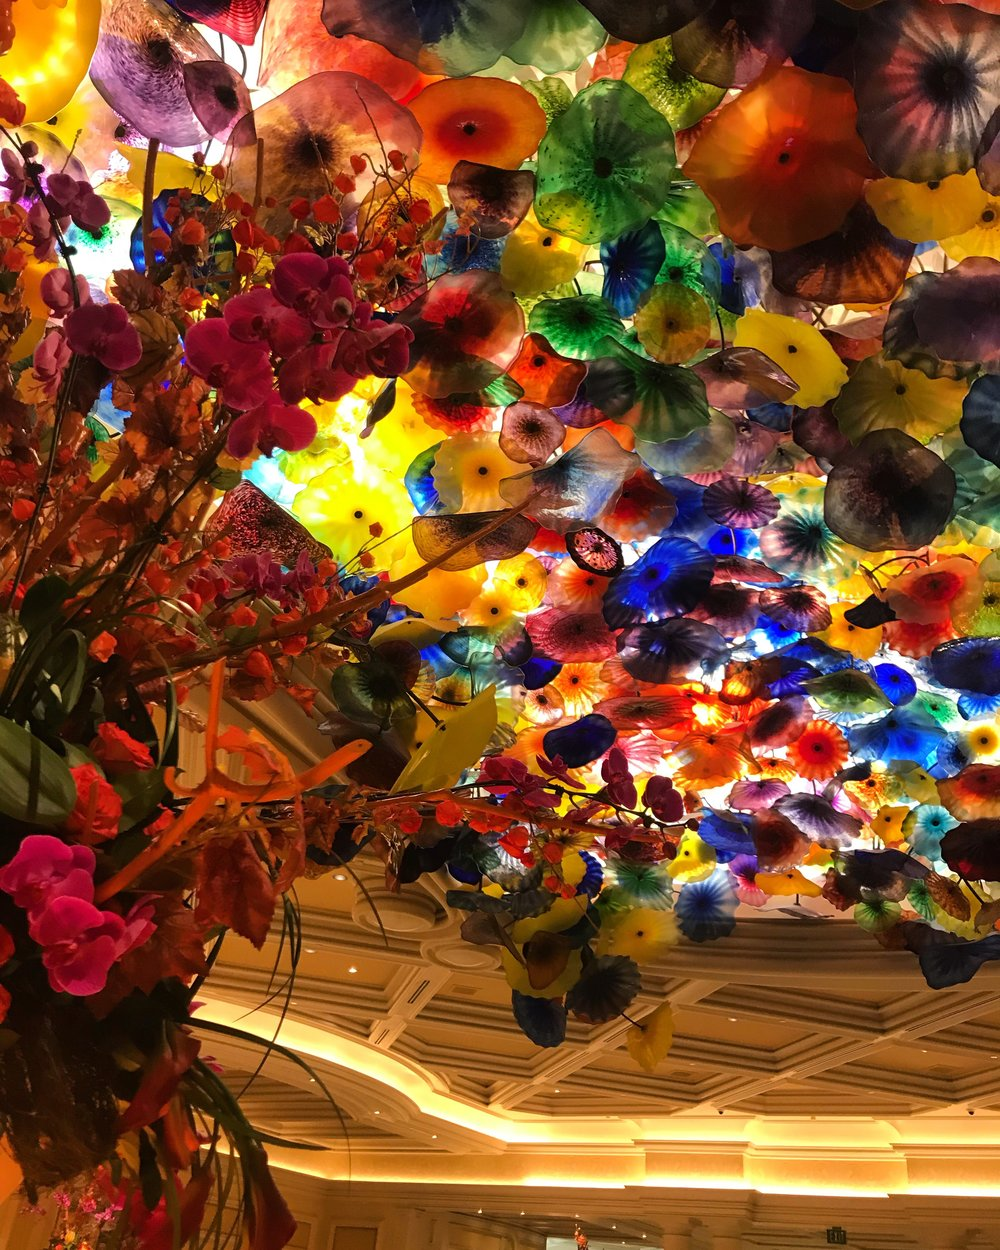 Dale Chihuly's hand-blown glass flowers.